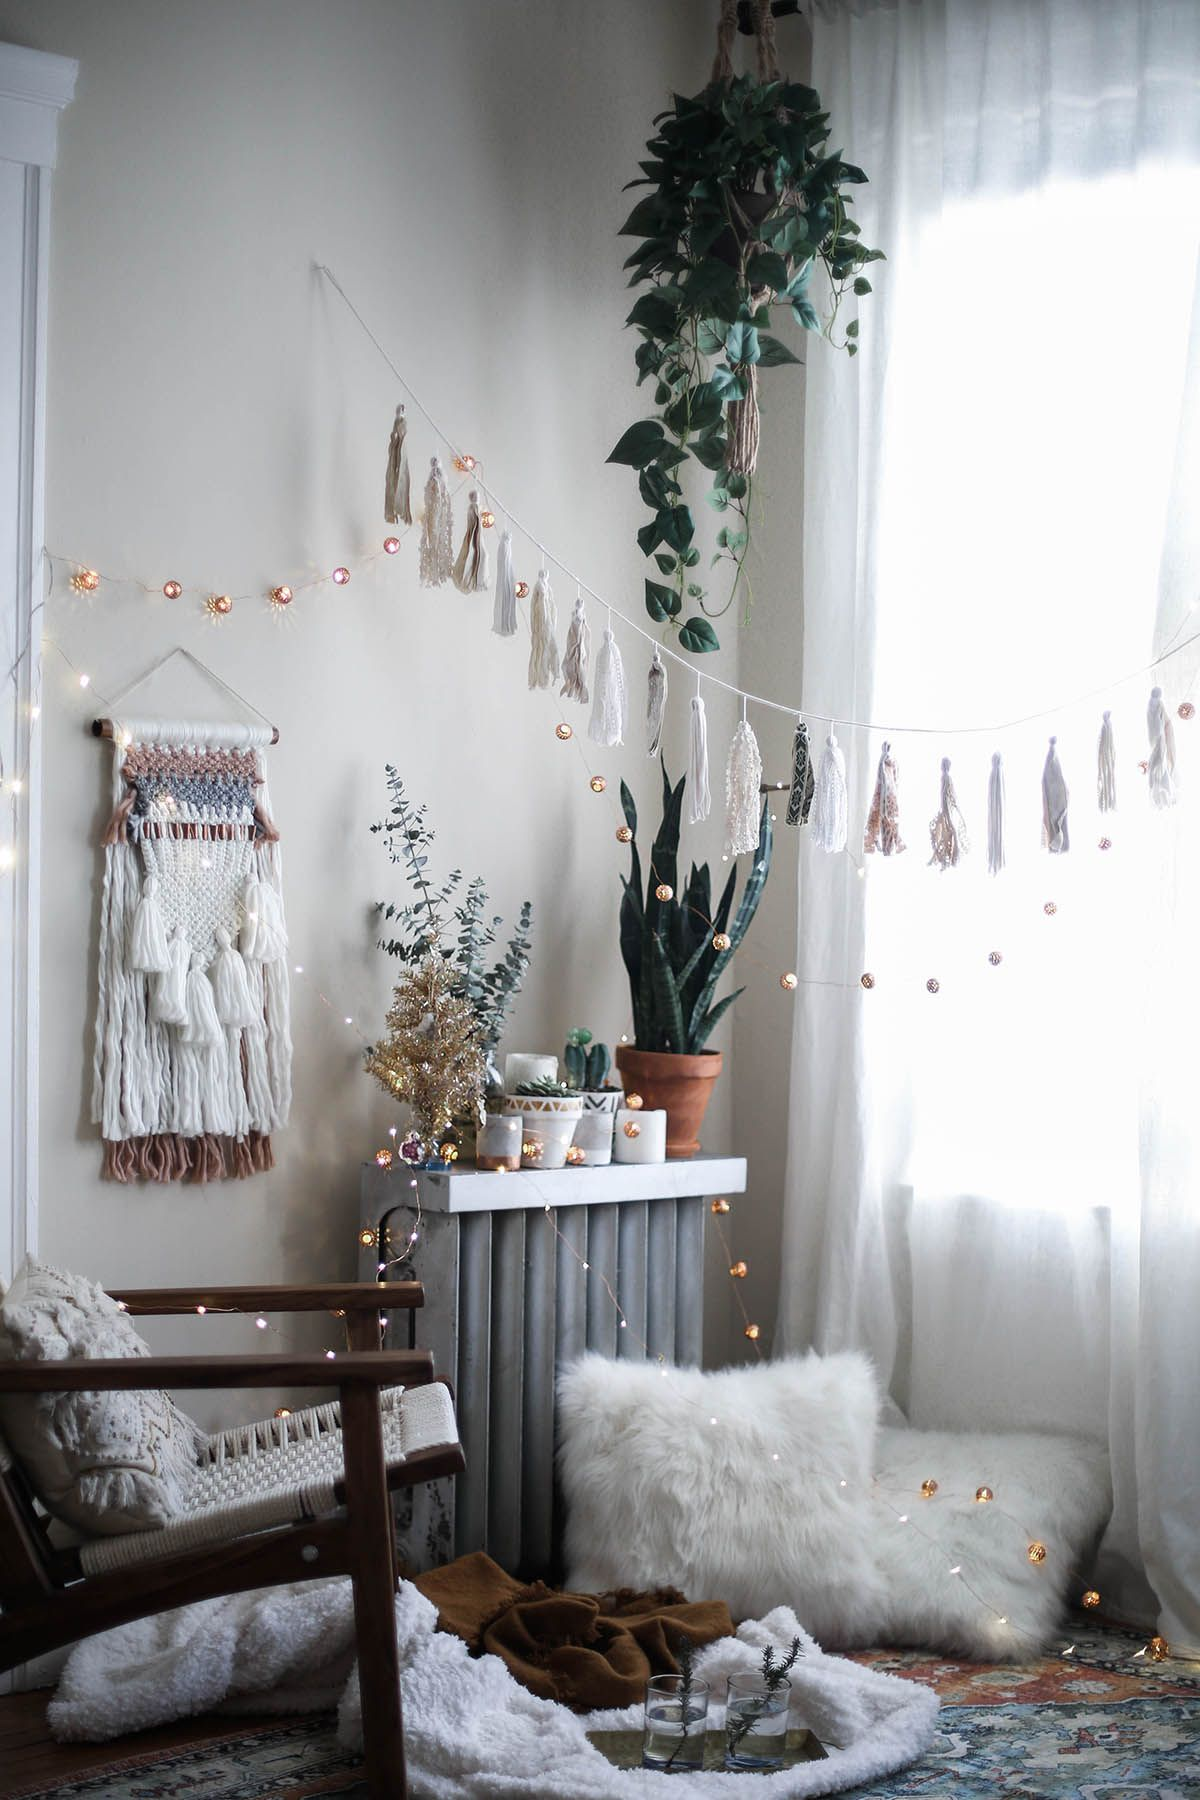 Bedroom Ideas Urban Outfitters A Cozy Holiday With Urban Outfitters Living Home Decor